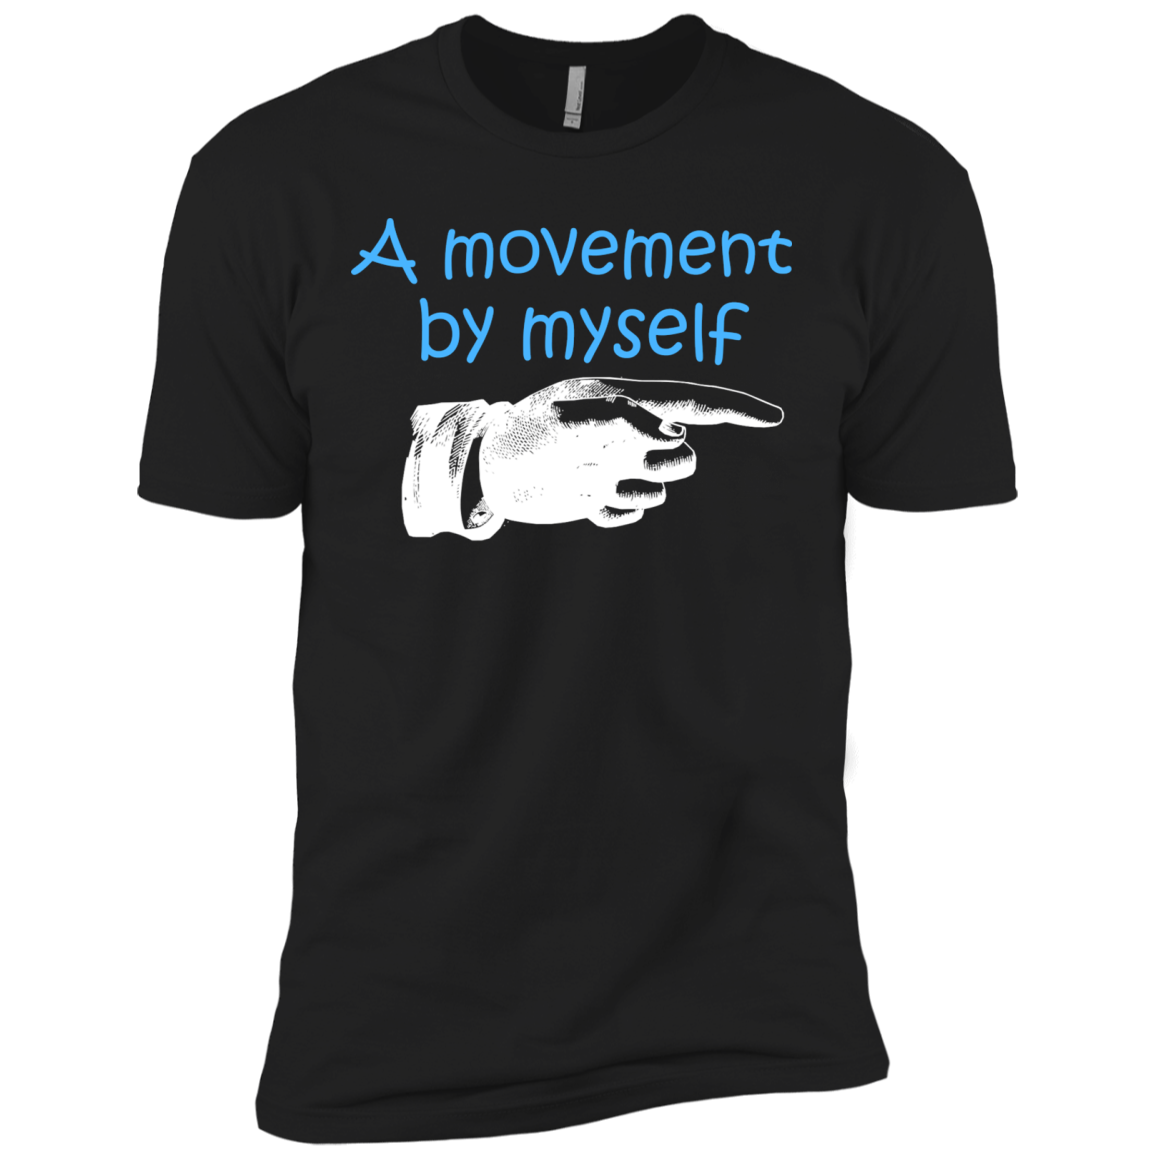 A MOVEMENT BY MYSELF T-Shirt & Hoodie - The Sun Cat